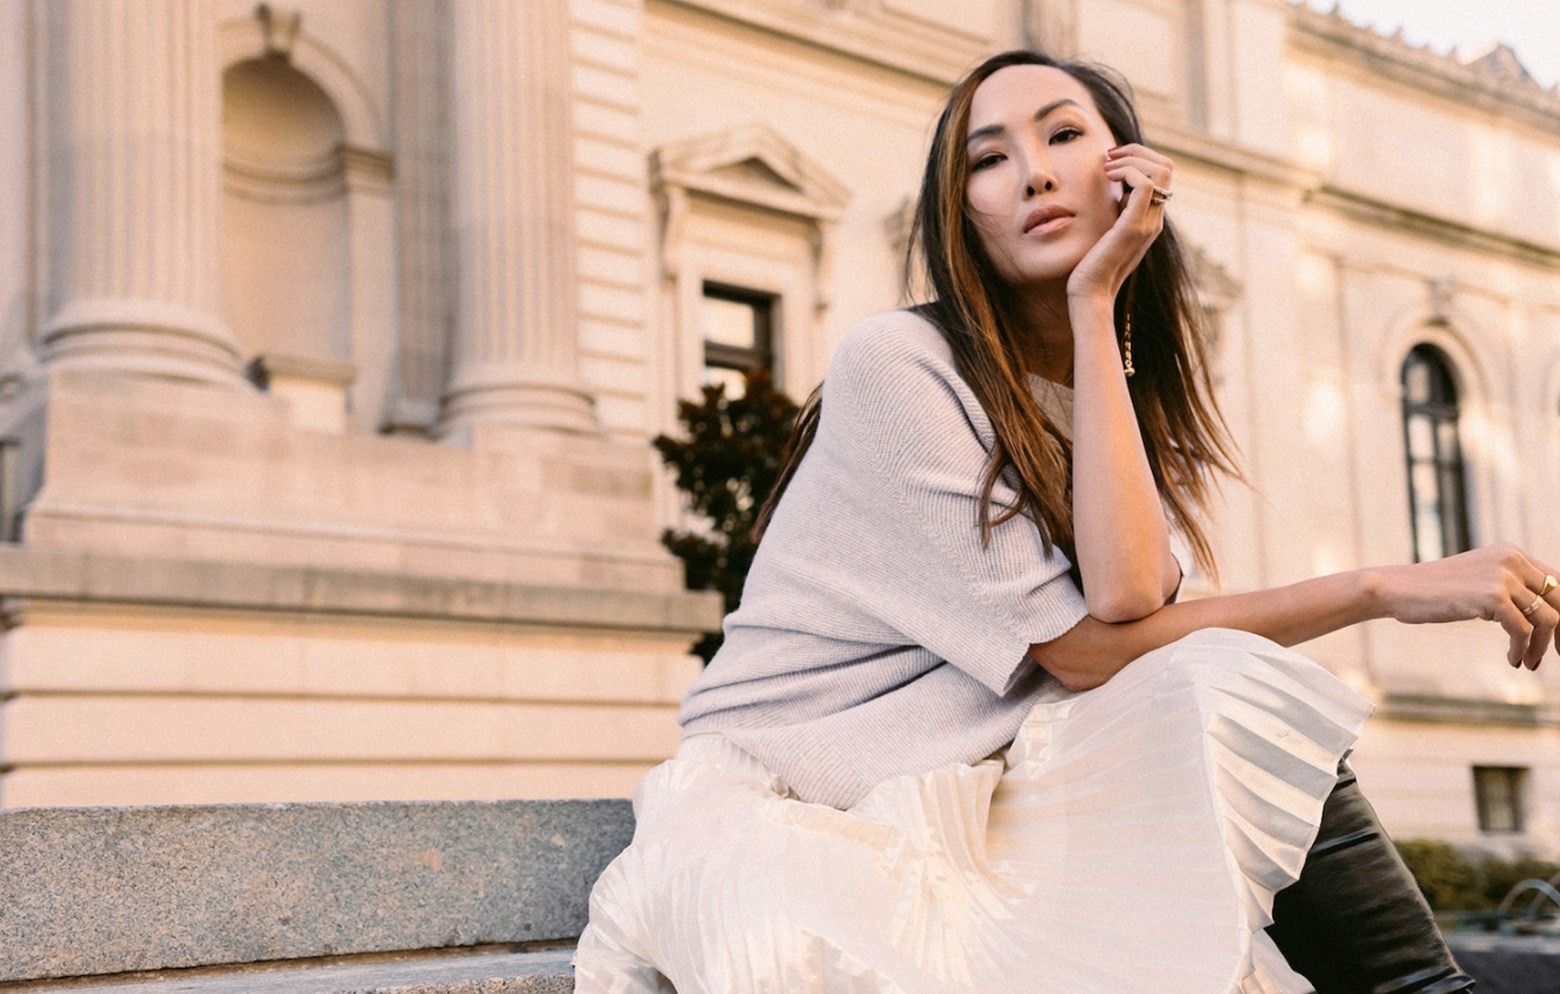 Chriselle Lim dressed in Saint John sitting down on some steps outside